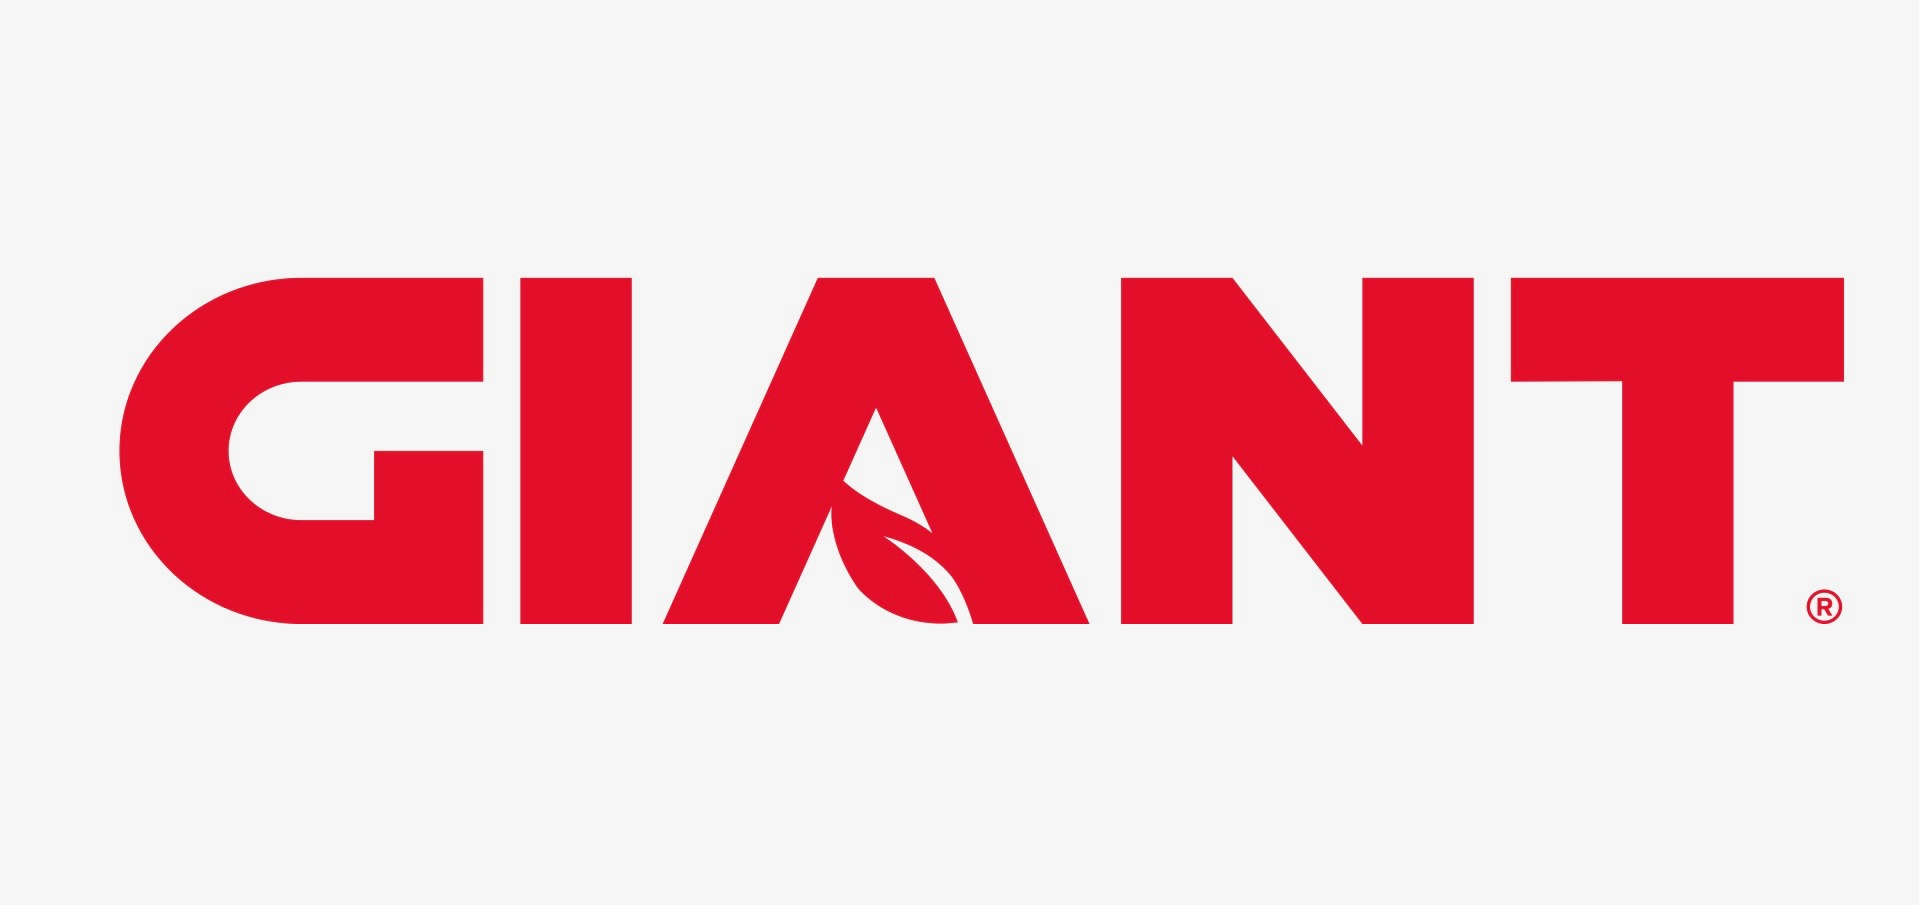 Giant unveils new company name and logo - pennlive.com